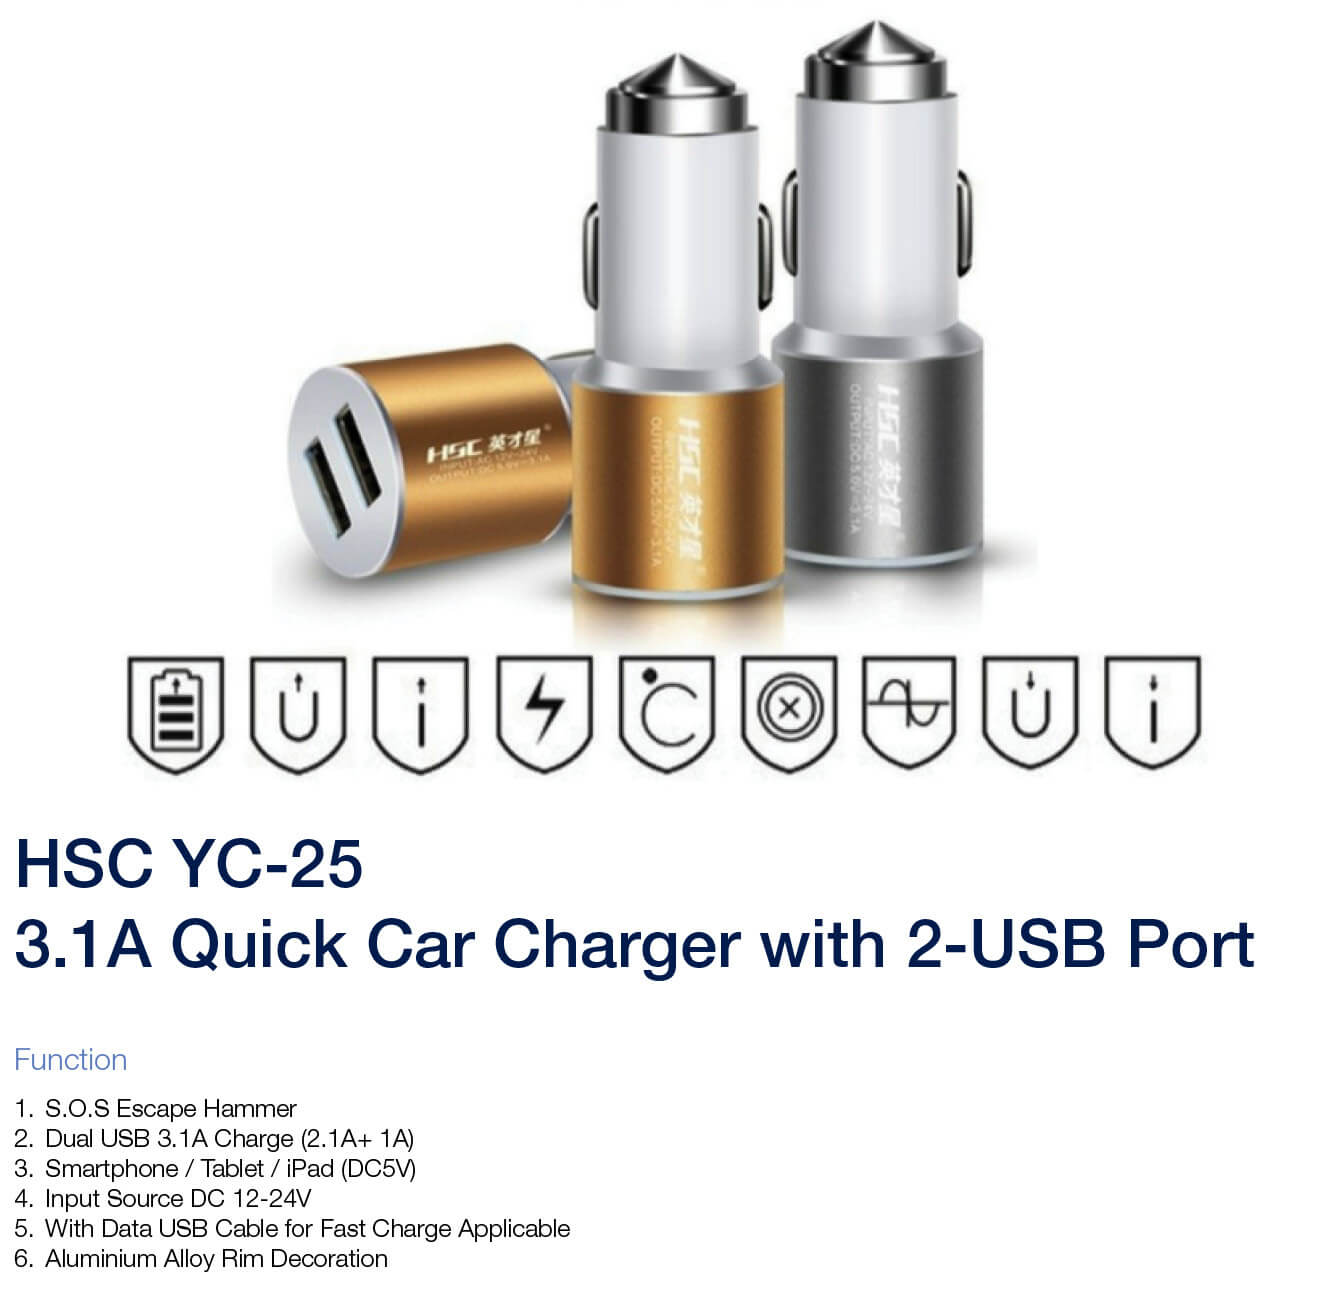 HSC-c-25-quick-car-charger-2-usb-port